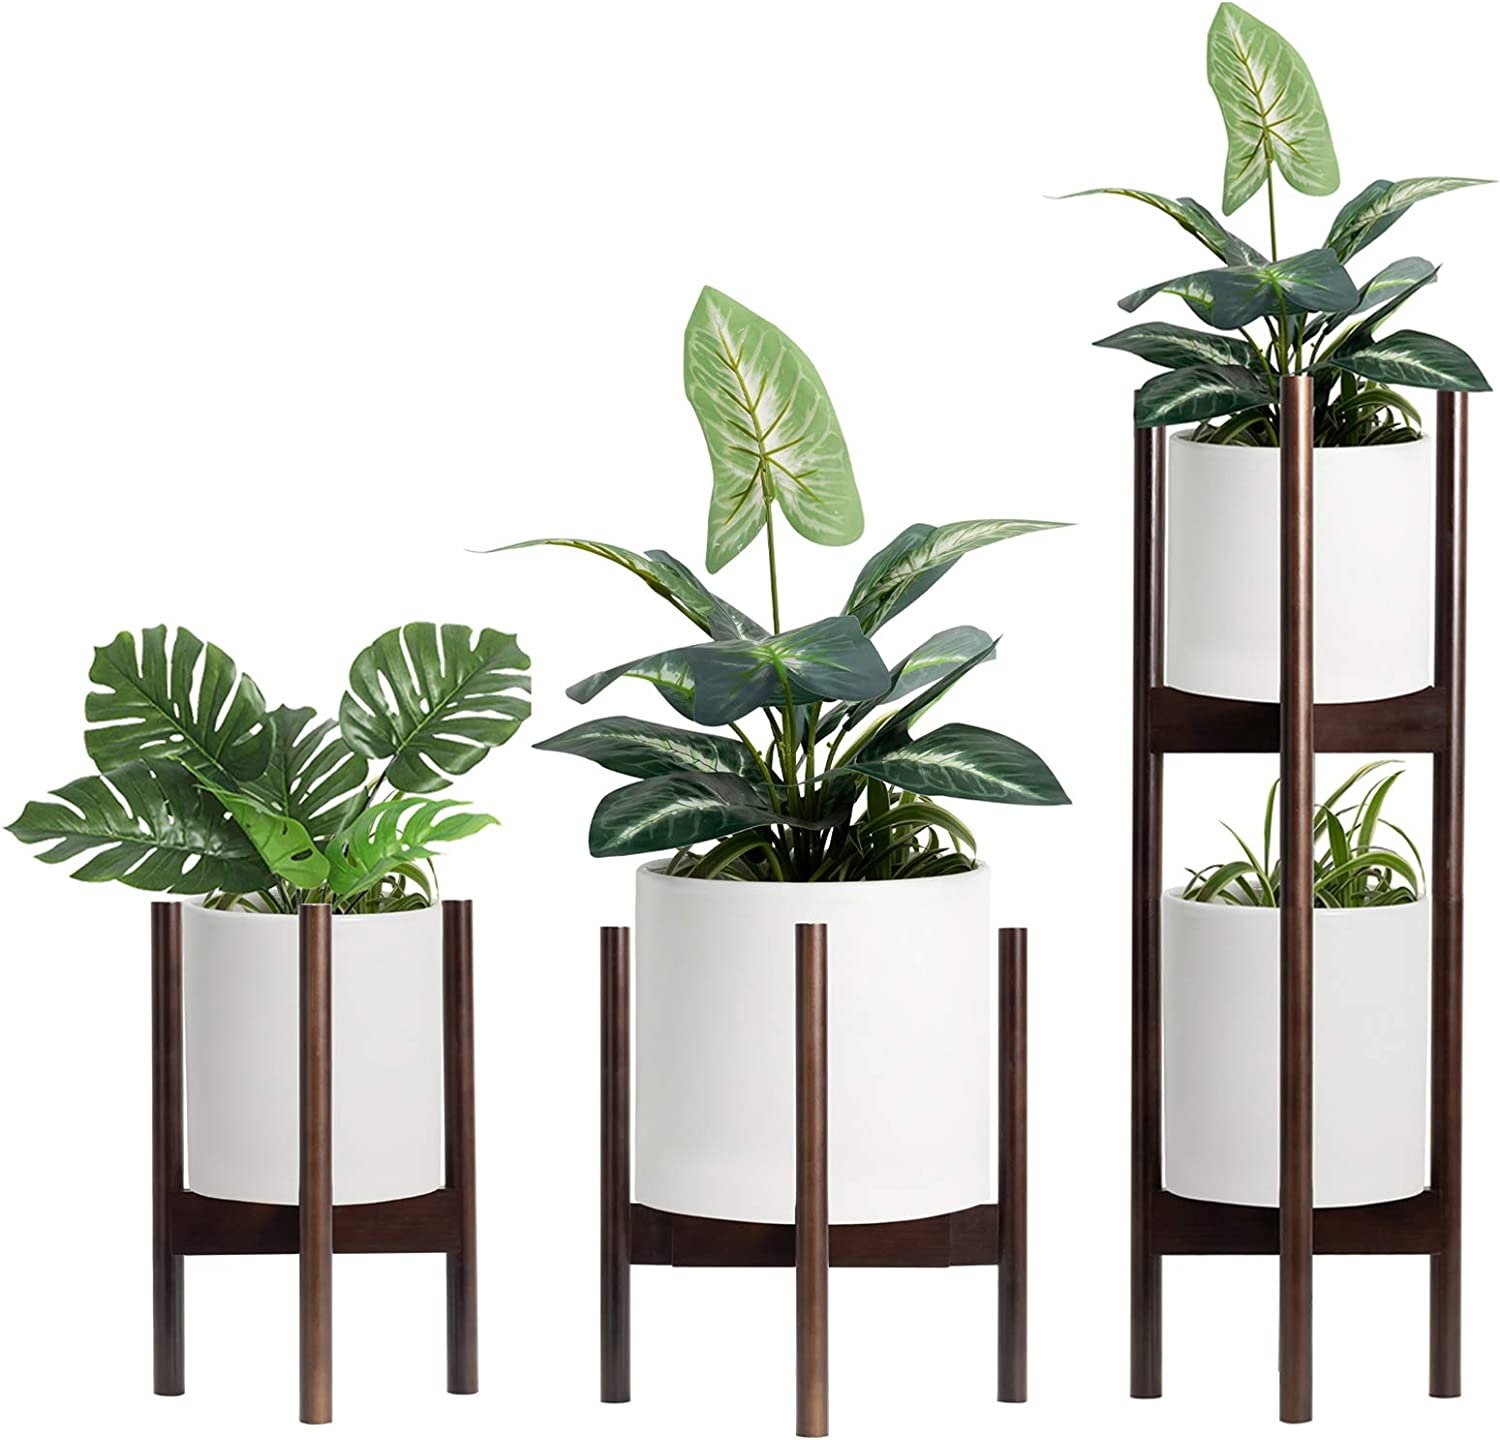 Plant Stand Pack of 2, Adjustable & Stackable Plant Stands Indoor,2 Tier Tall Plant Stand 30 inches,Fits Pot Size of 8 to 12 inches Pot & Plant Not Included